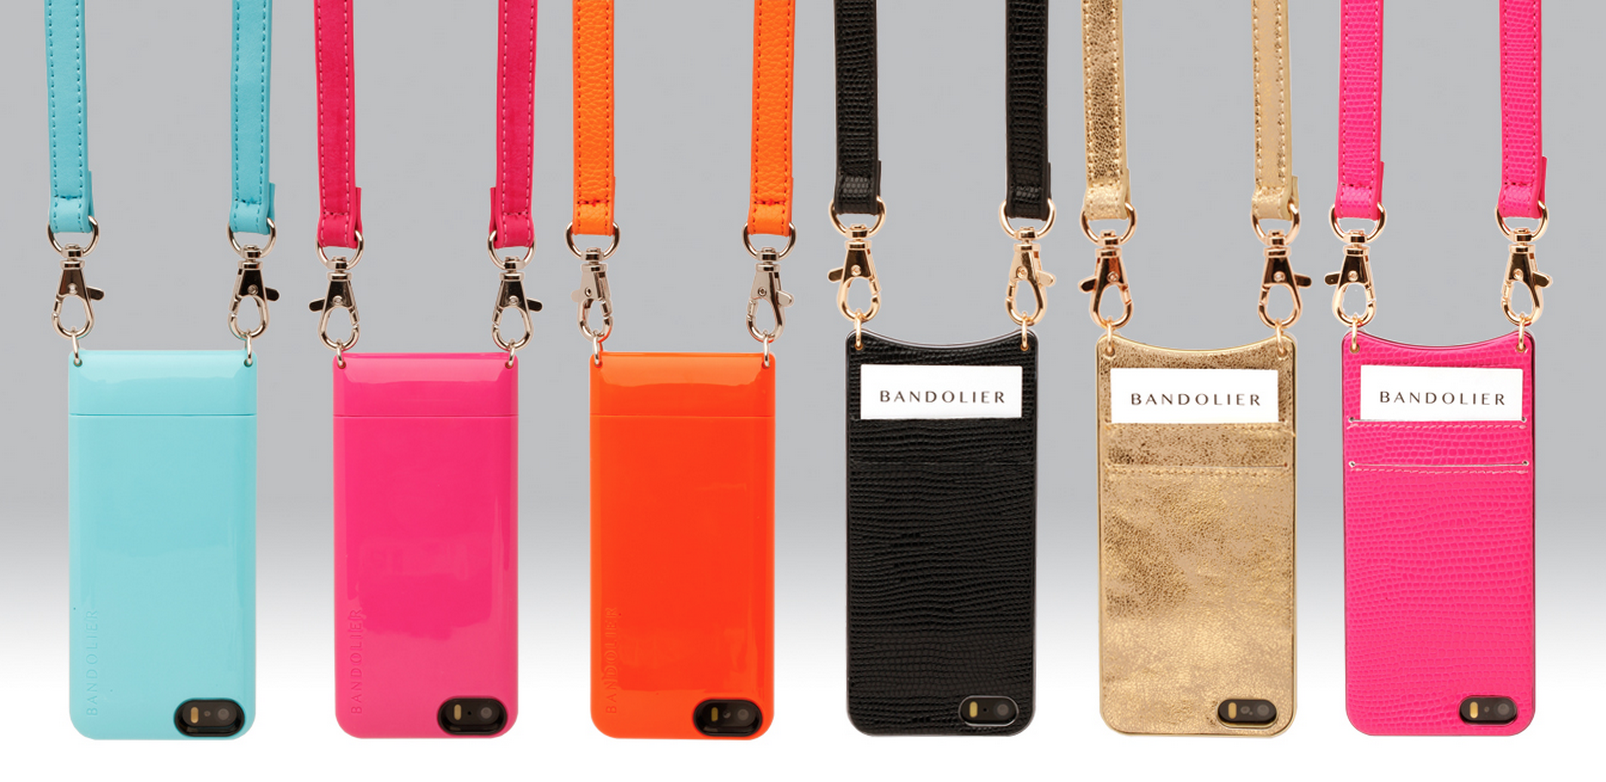 Bandolier iPhone case